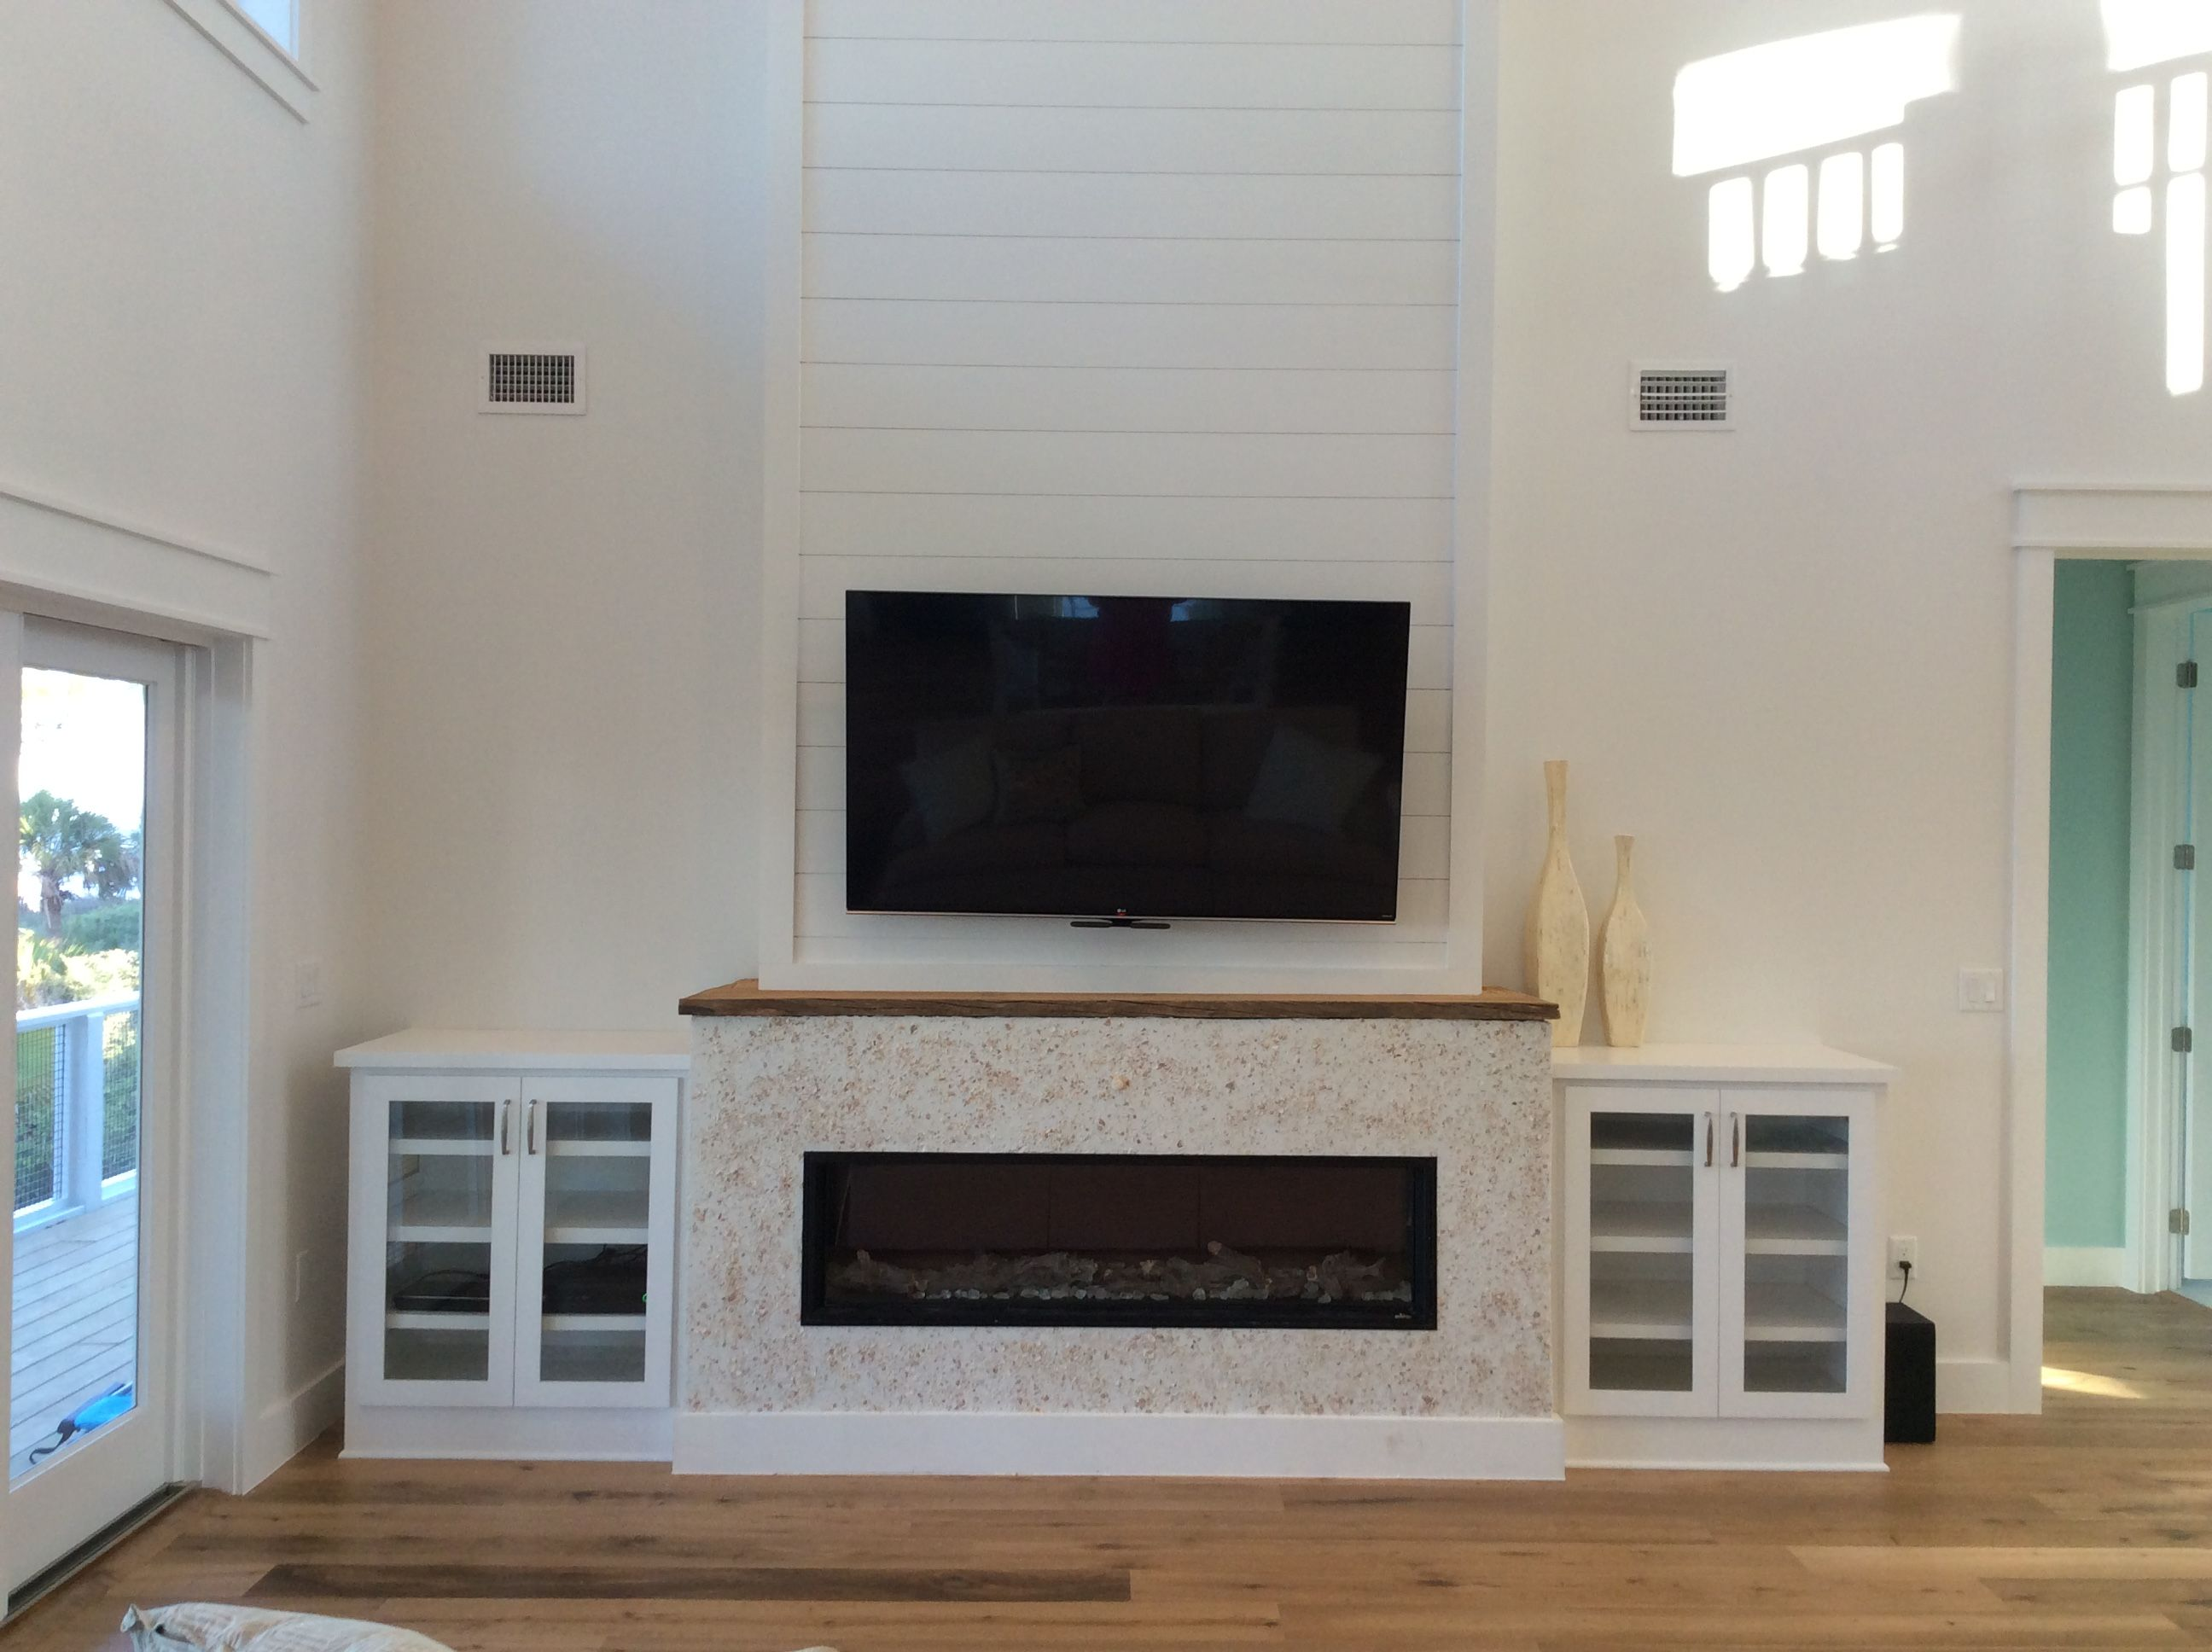 Living Room Built In Electric Fireplace Heaters With Inset Electric Fireplace Also Inbuilt Shelv Built In